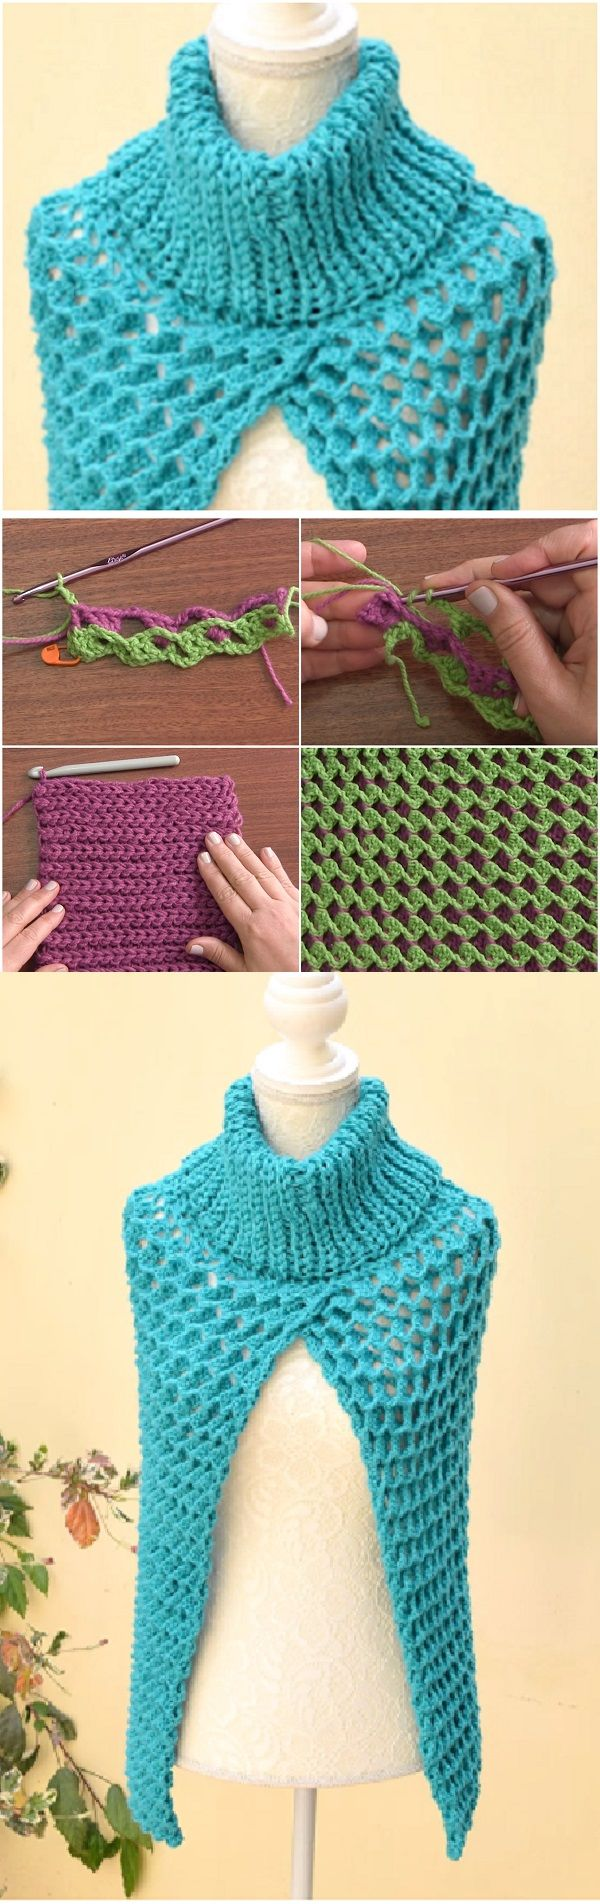 Crochet Poncho Cape with Turtleneck | Crochet | Pinterest | Ponchos ...